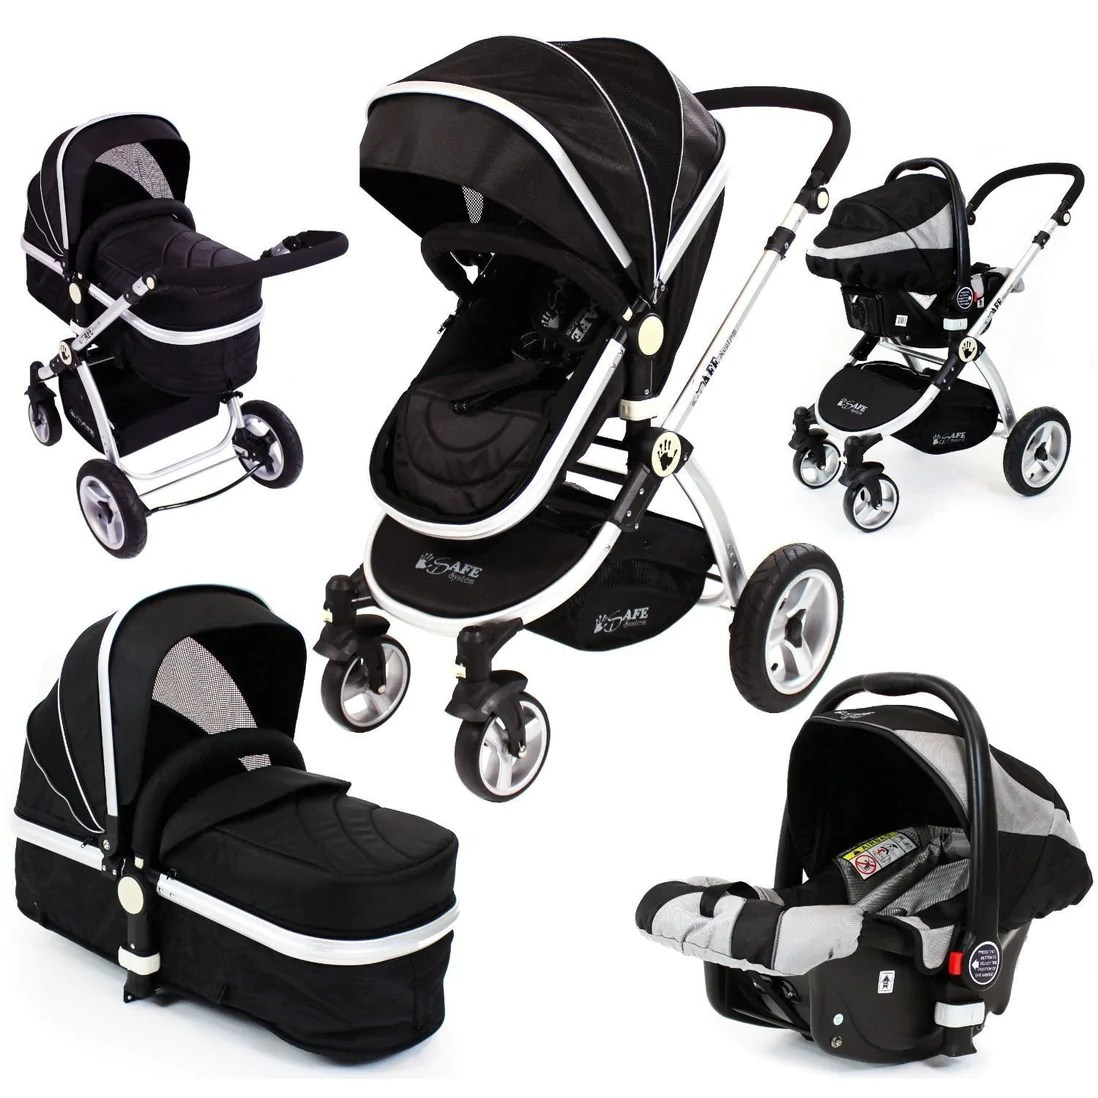 Baby Prams For Sale Uk Isafe 3 In 1 Black With Car Seat Travel System Pram Options